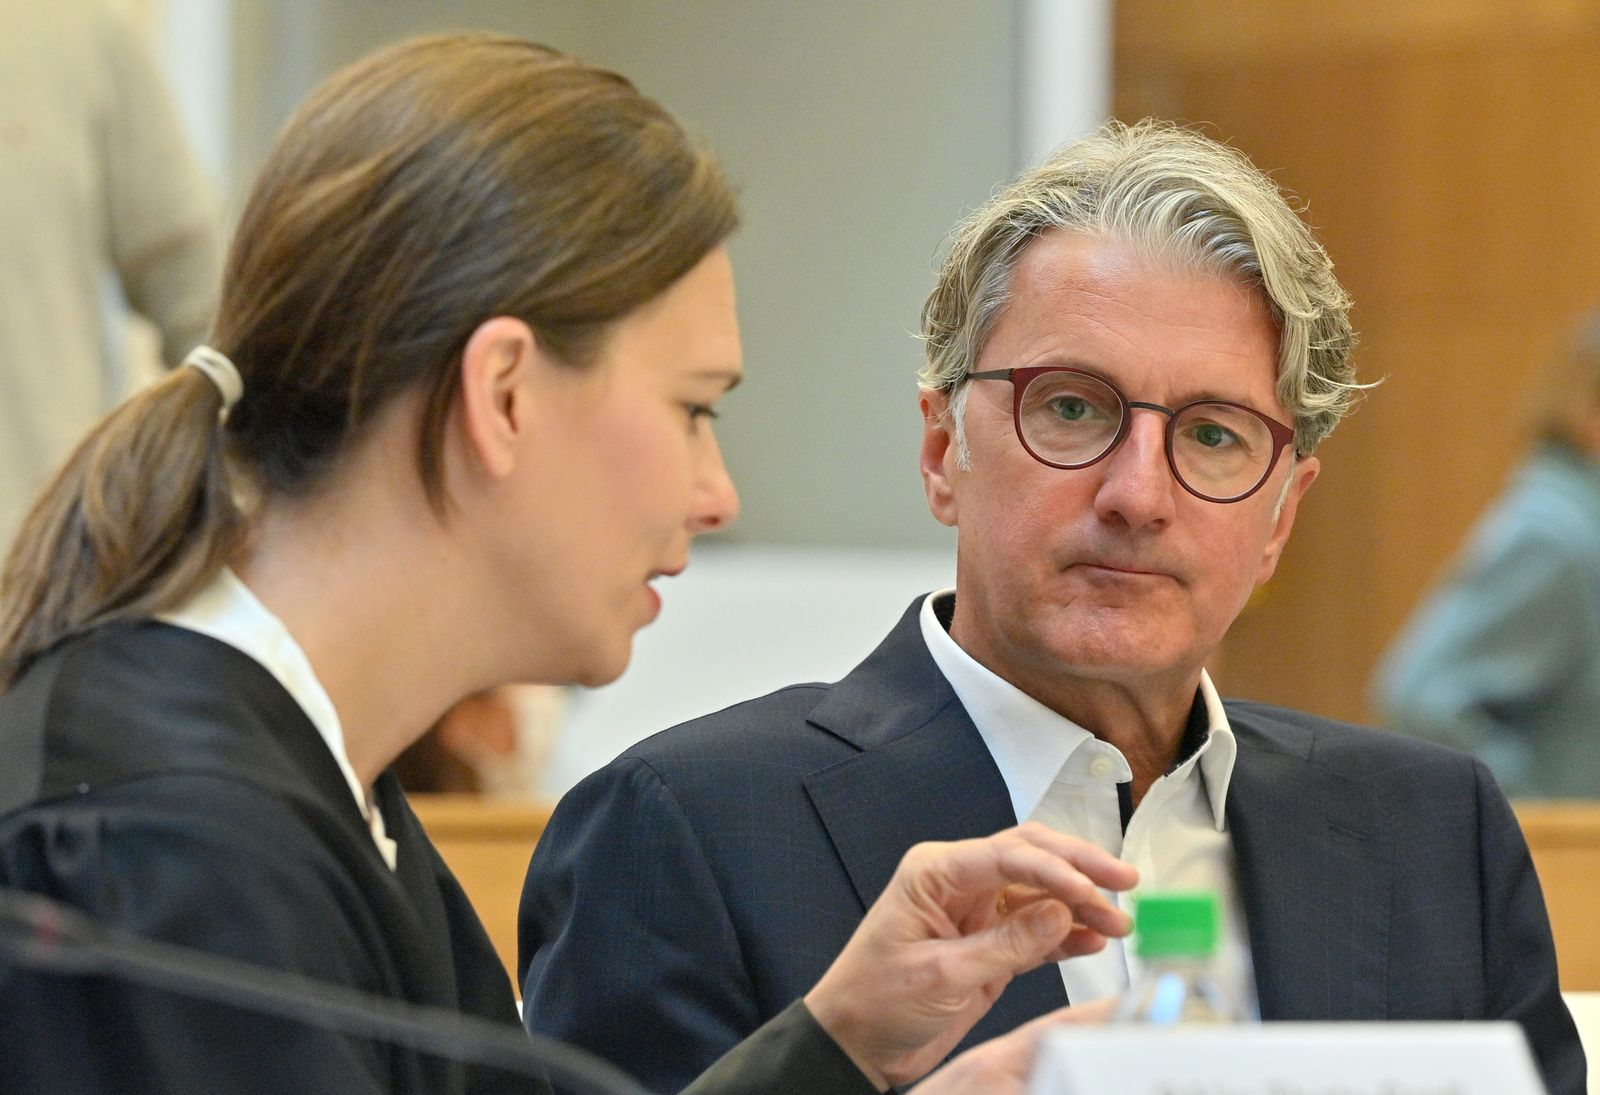 GERMANY-AUTOMOBILE-TRIAL-FRAUD-AUDI